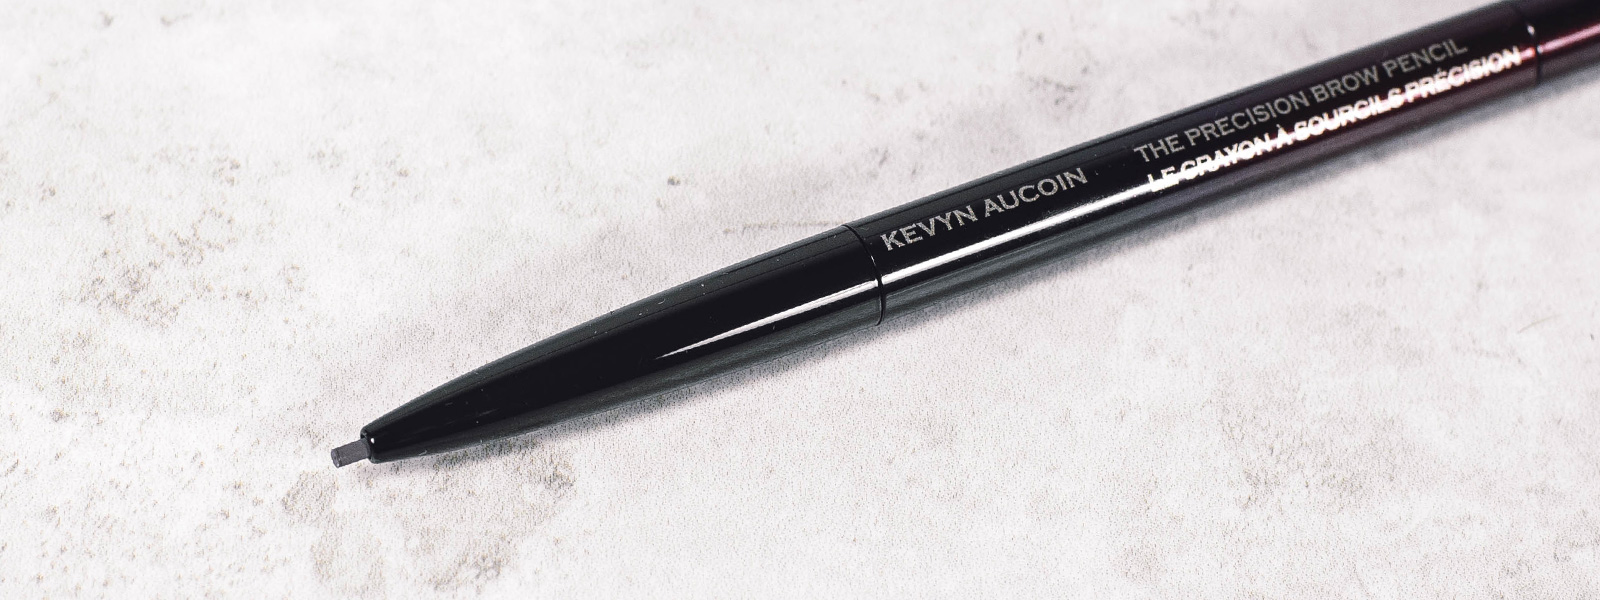 Kevyn Aucoin Precision Brow Pencil